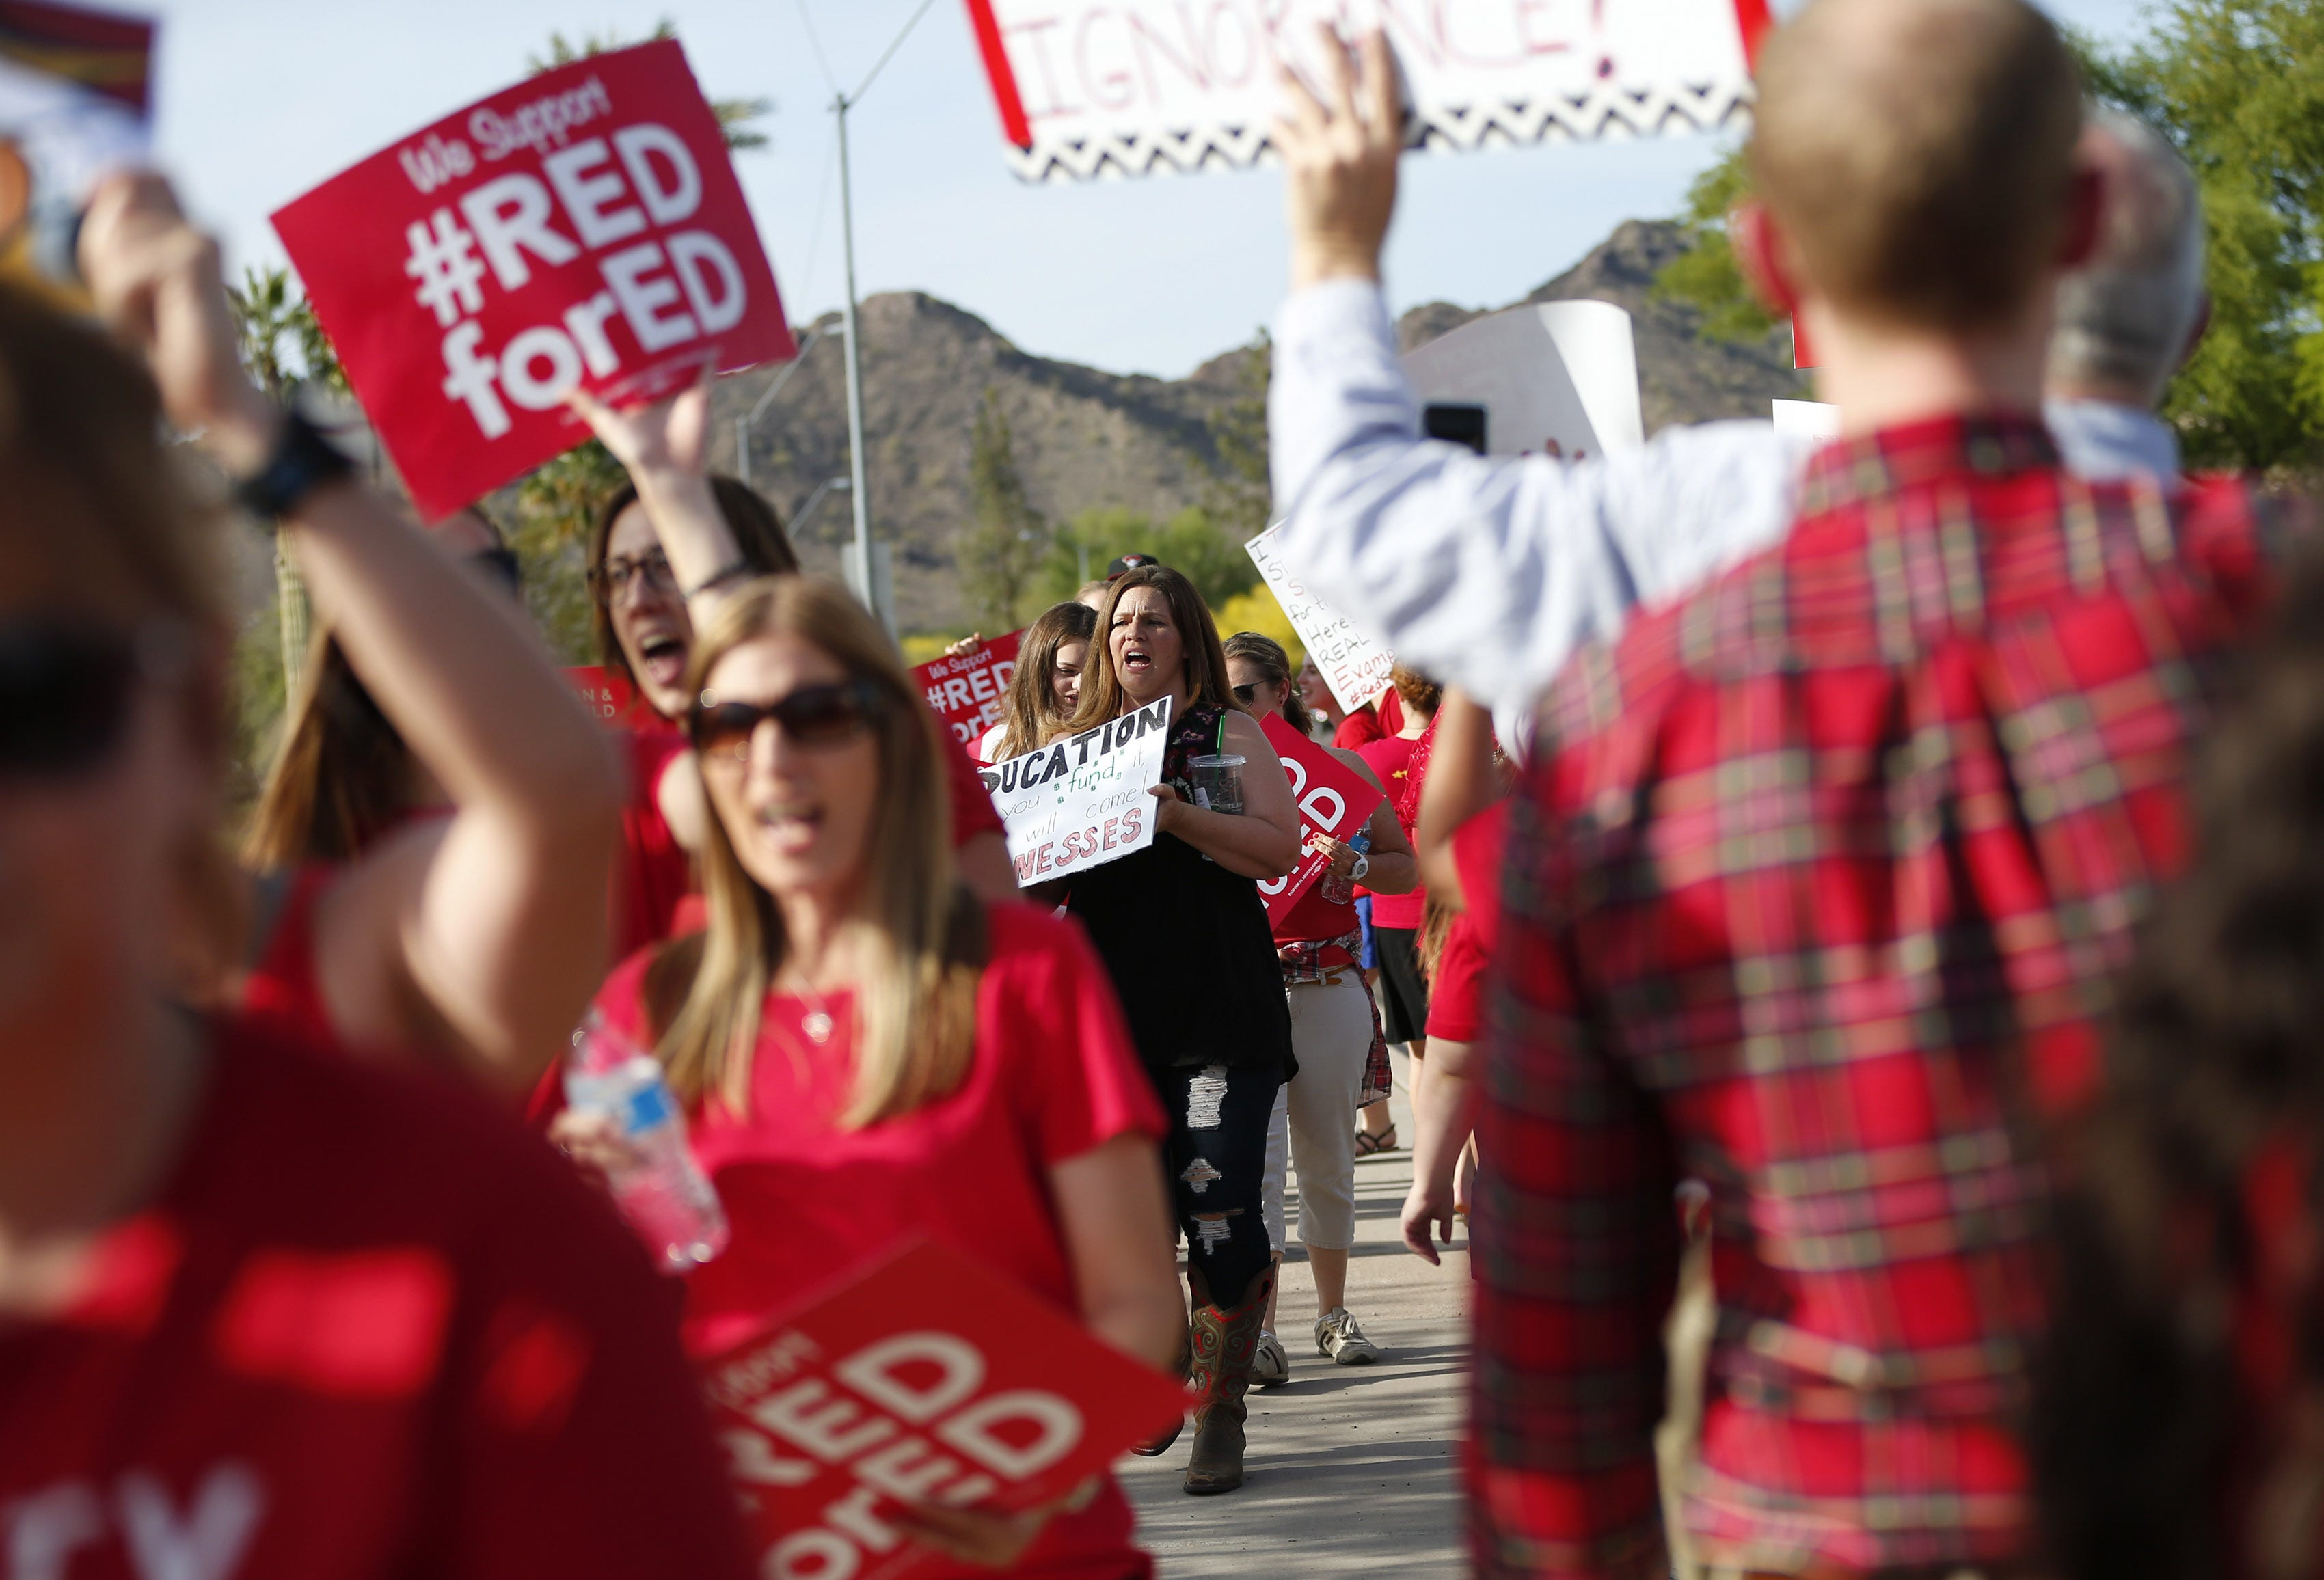 #RedForEd: How Arizona's movement went from red T-shirts to a walkout | Arizona Central